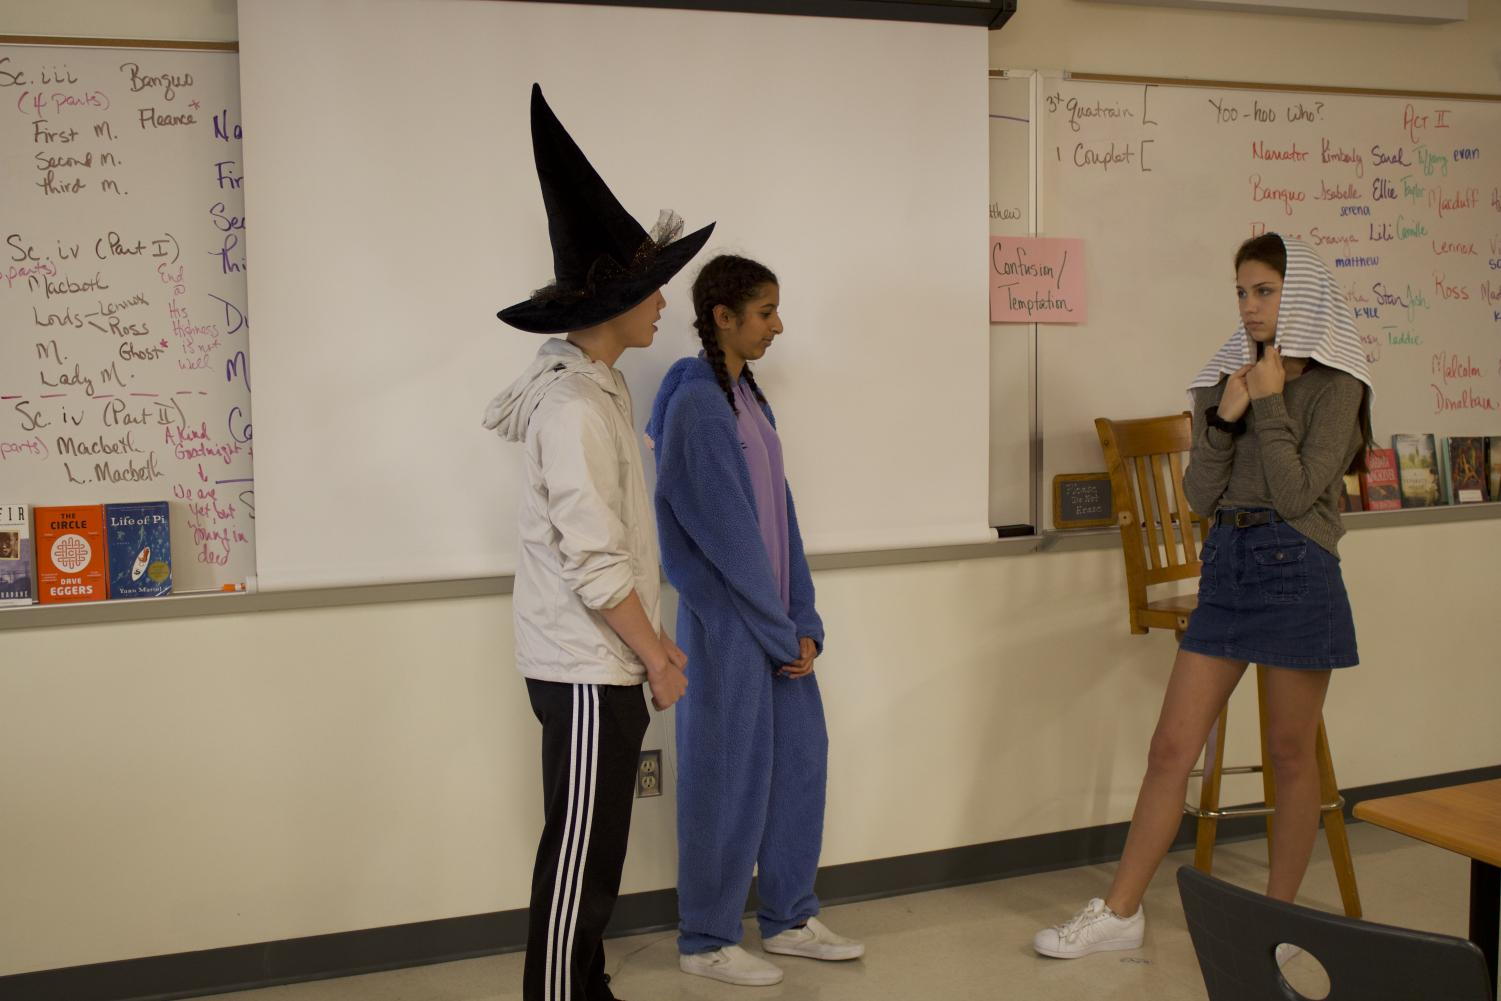 Inshal+Khawaja+%2722+and+Schuylar+Salemme+%2722+listen+as+Ryan+Tay+%2722+recites+a+line+from+Macbeth.+The+sophomores+are+playing+the+three+witches+that+represent+the+supernatural+forces+at+work+in+the+play.